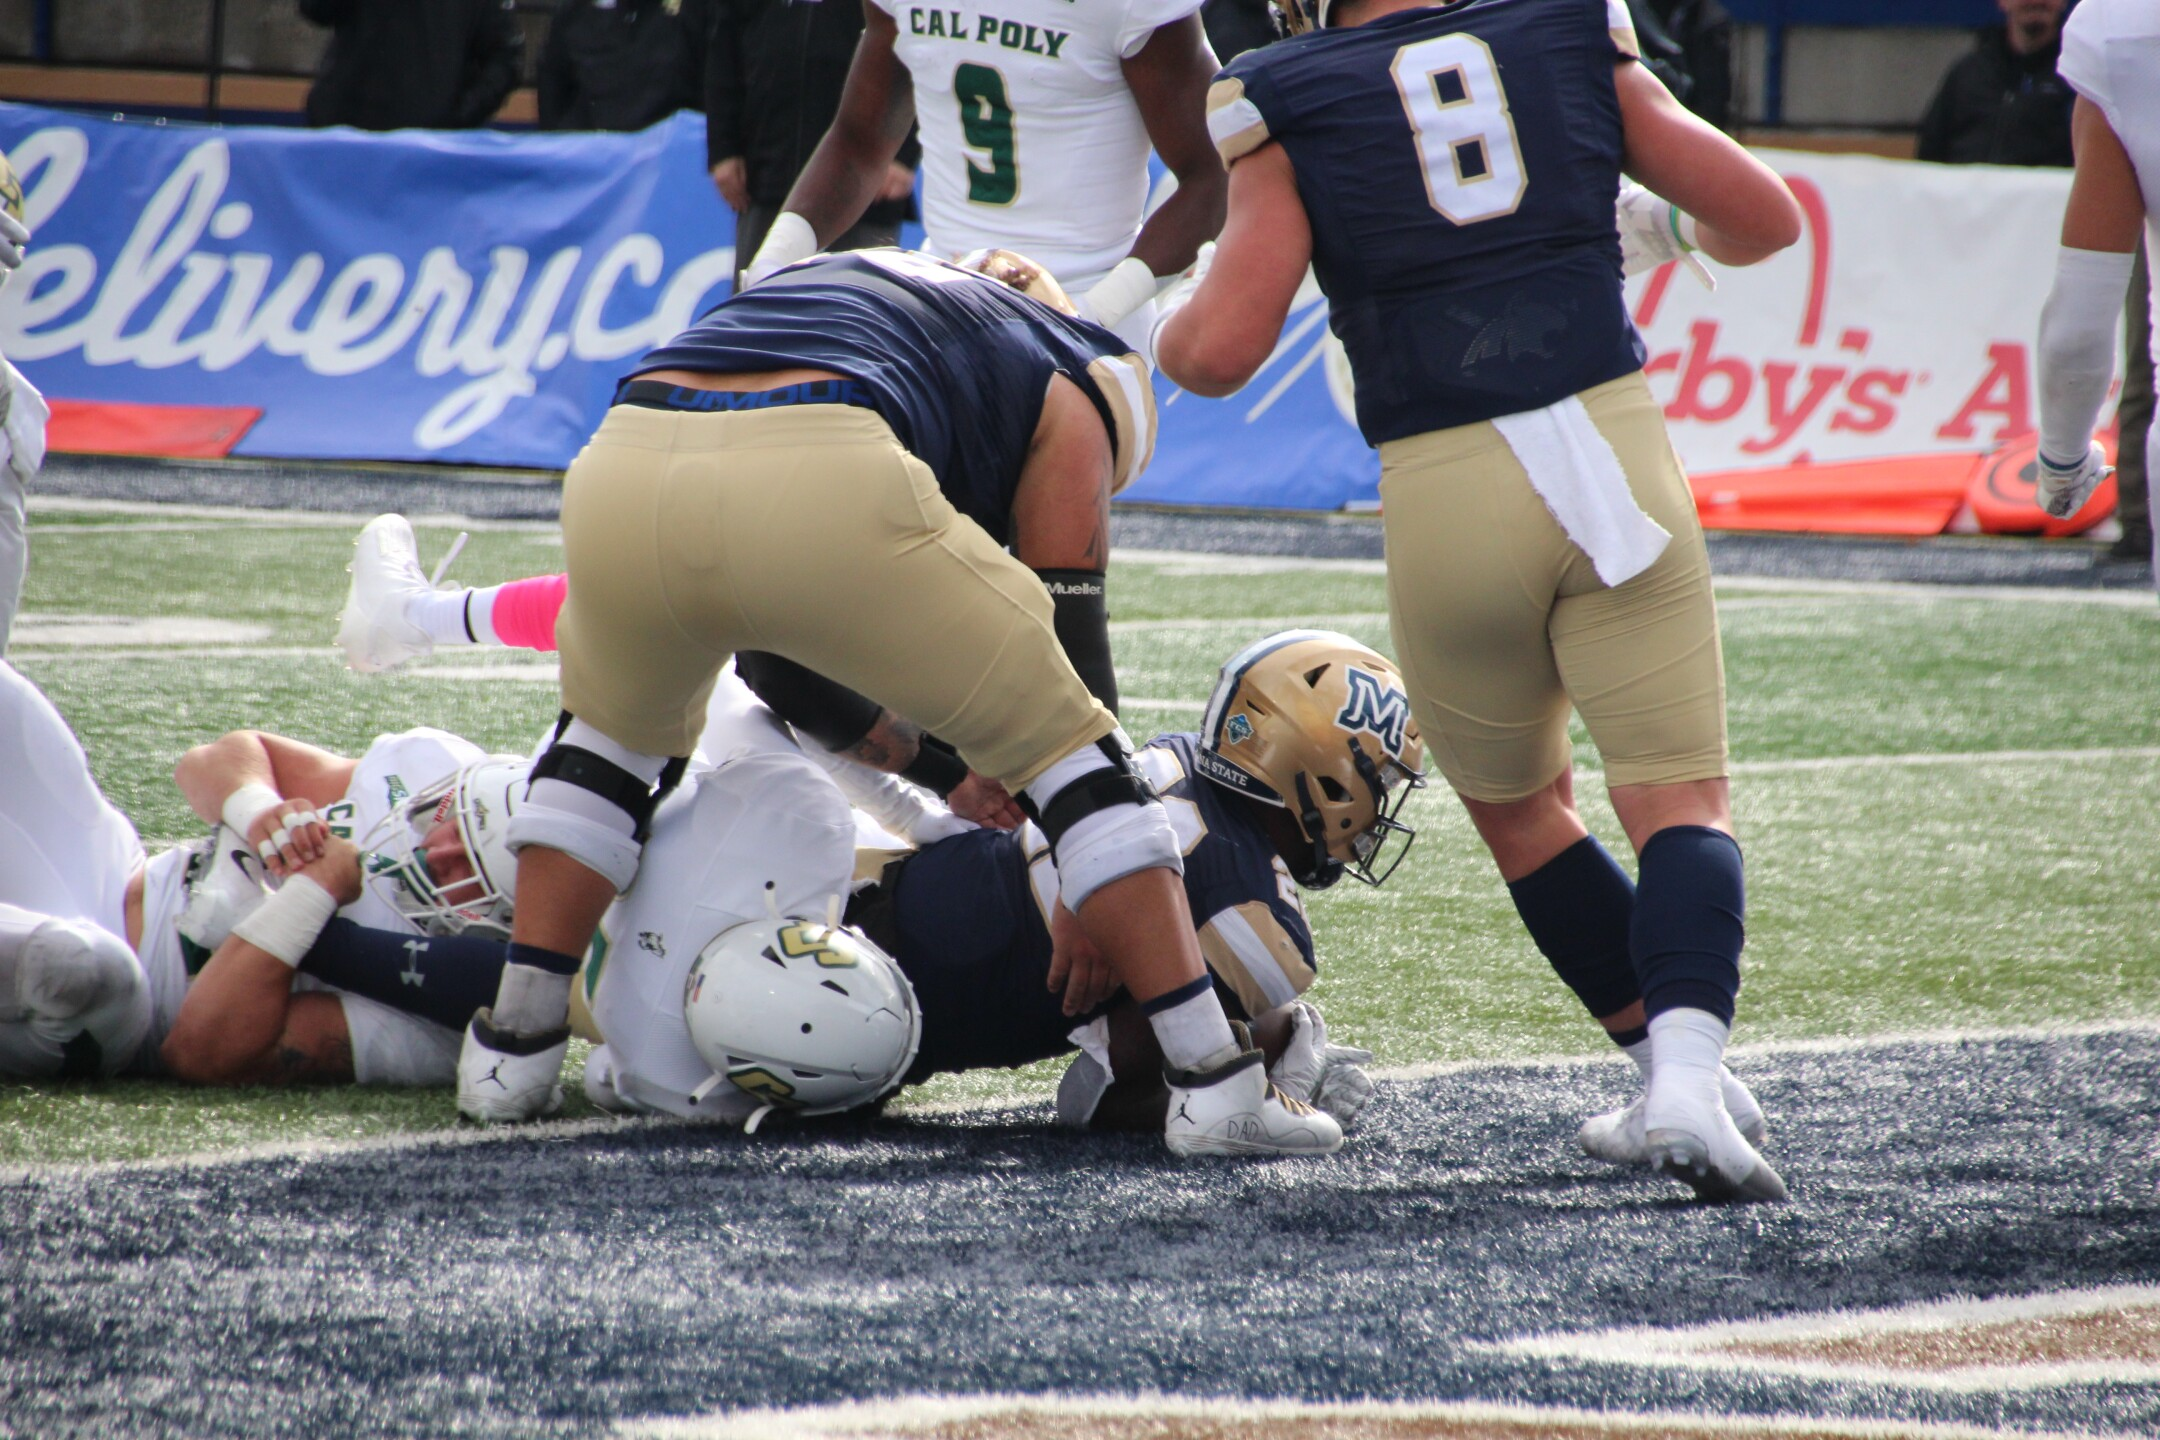 Isaiah Ifanse leans into the end zone for a rushing touchdown